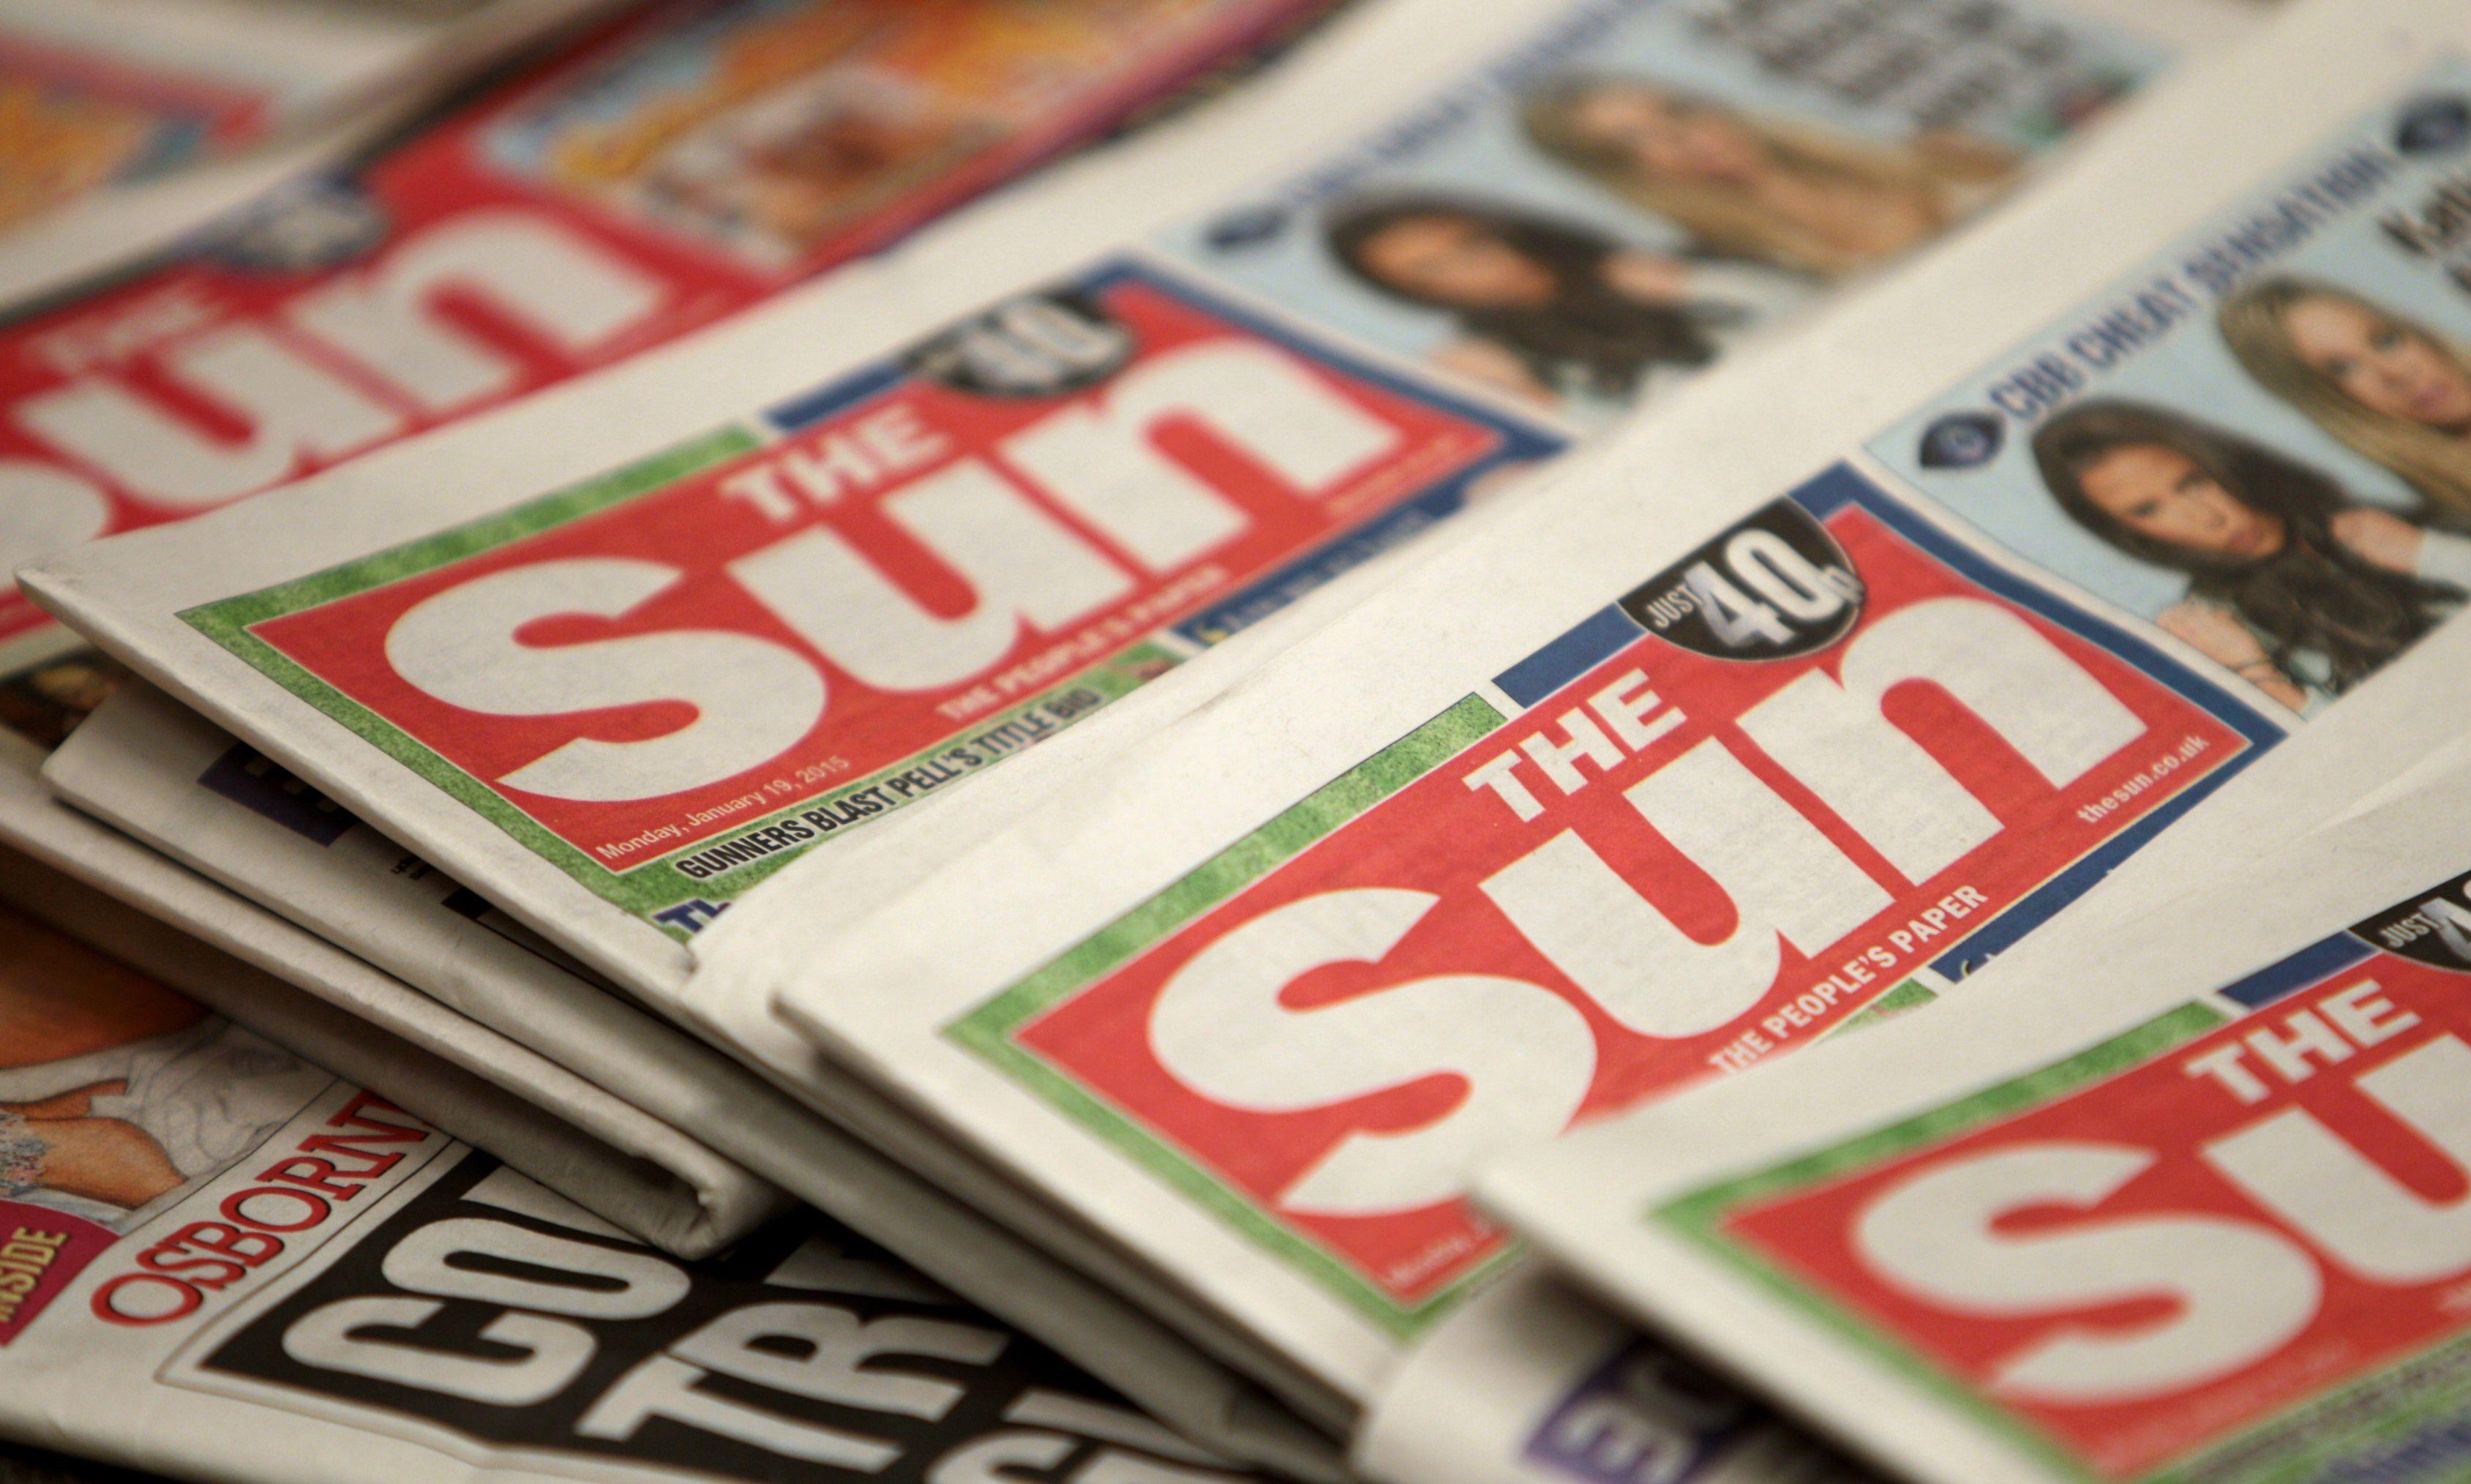 Queen's Nazi salute footage is matter of historical significance, says Sun